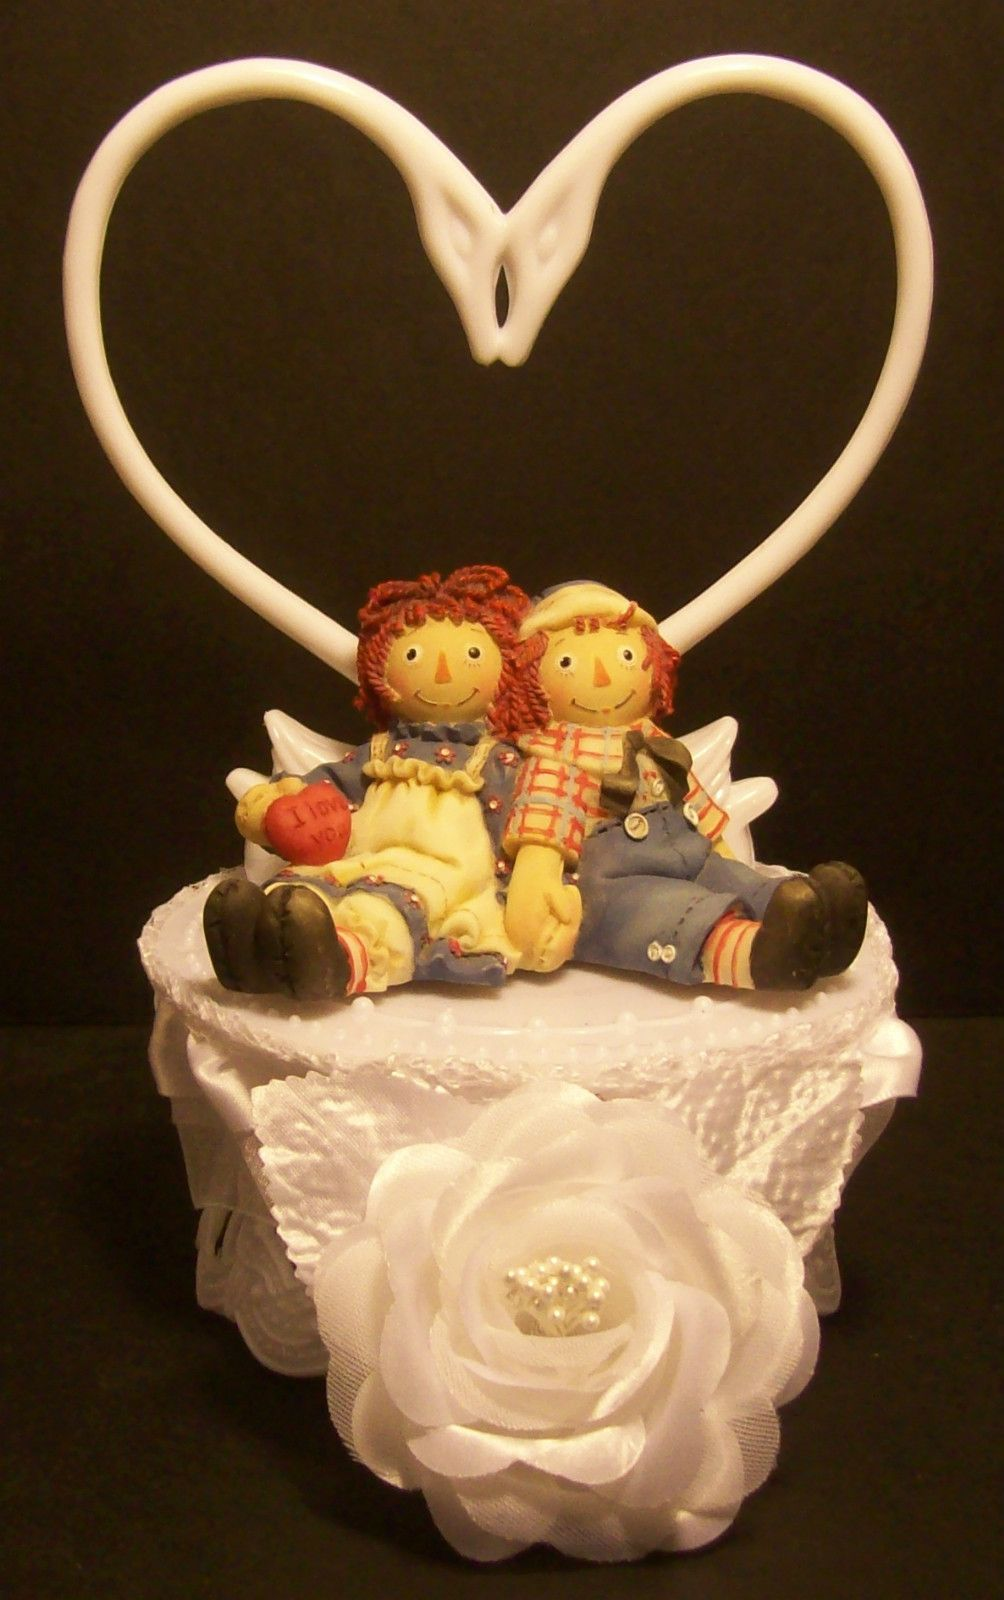 cuban wedding cake toppers raggedy amp andy and groom wedding cake topper 13138